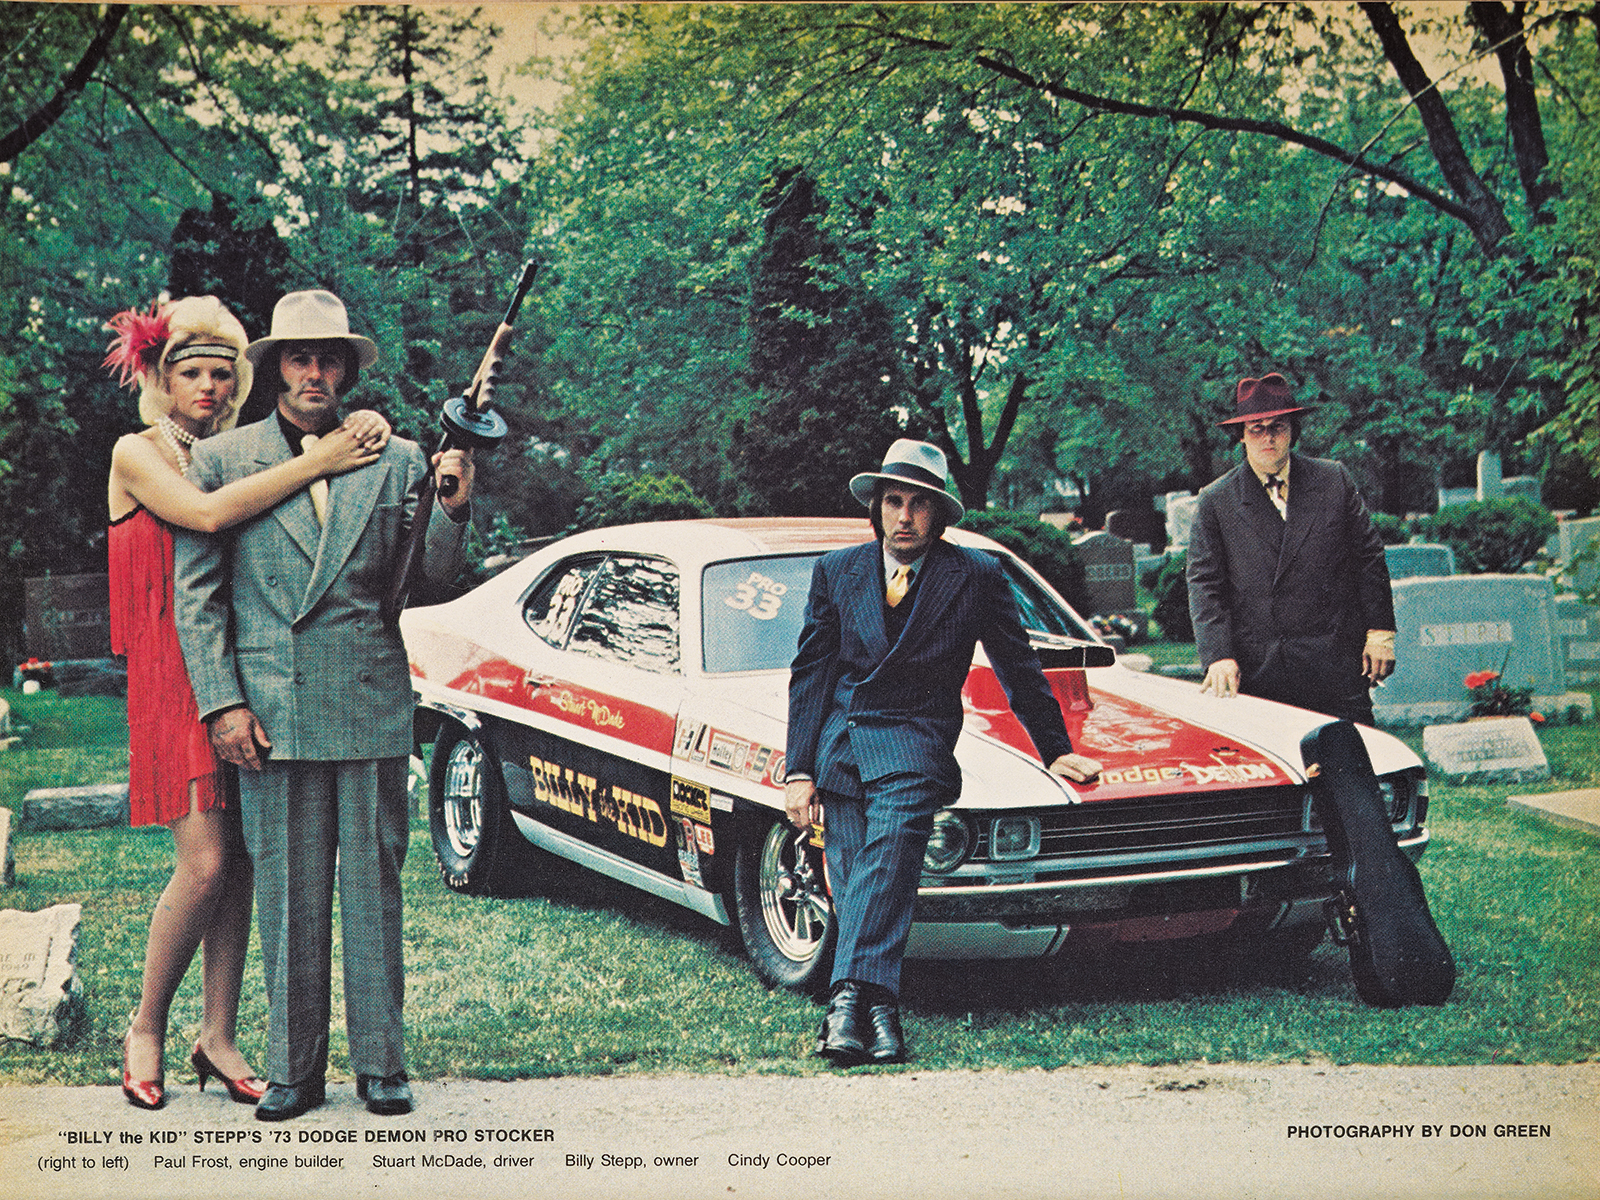 "The Thompson submachine gun was real, and the gangster apparel was authentic when Don Green photographed Billy ""The Kid"" Stepp and his Pro Stock Demon in an Ohio graveyard."